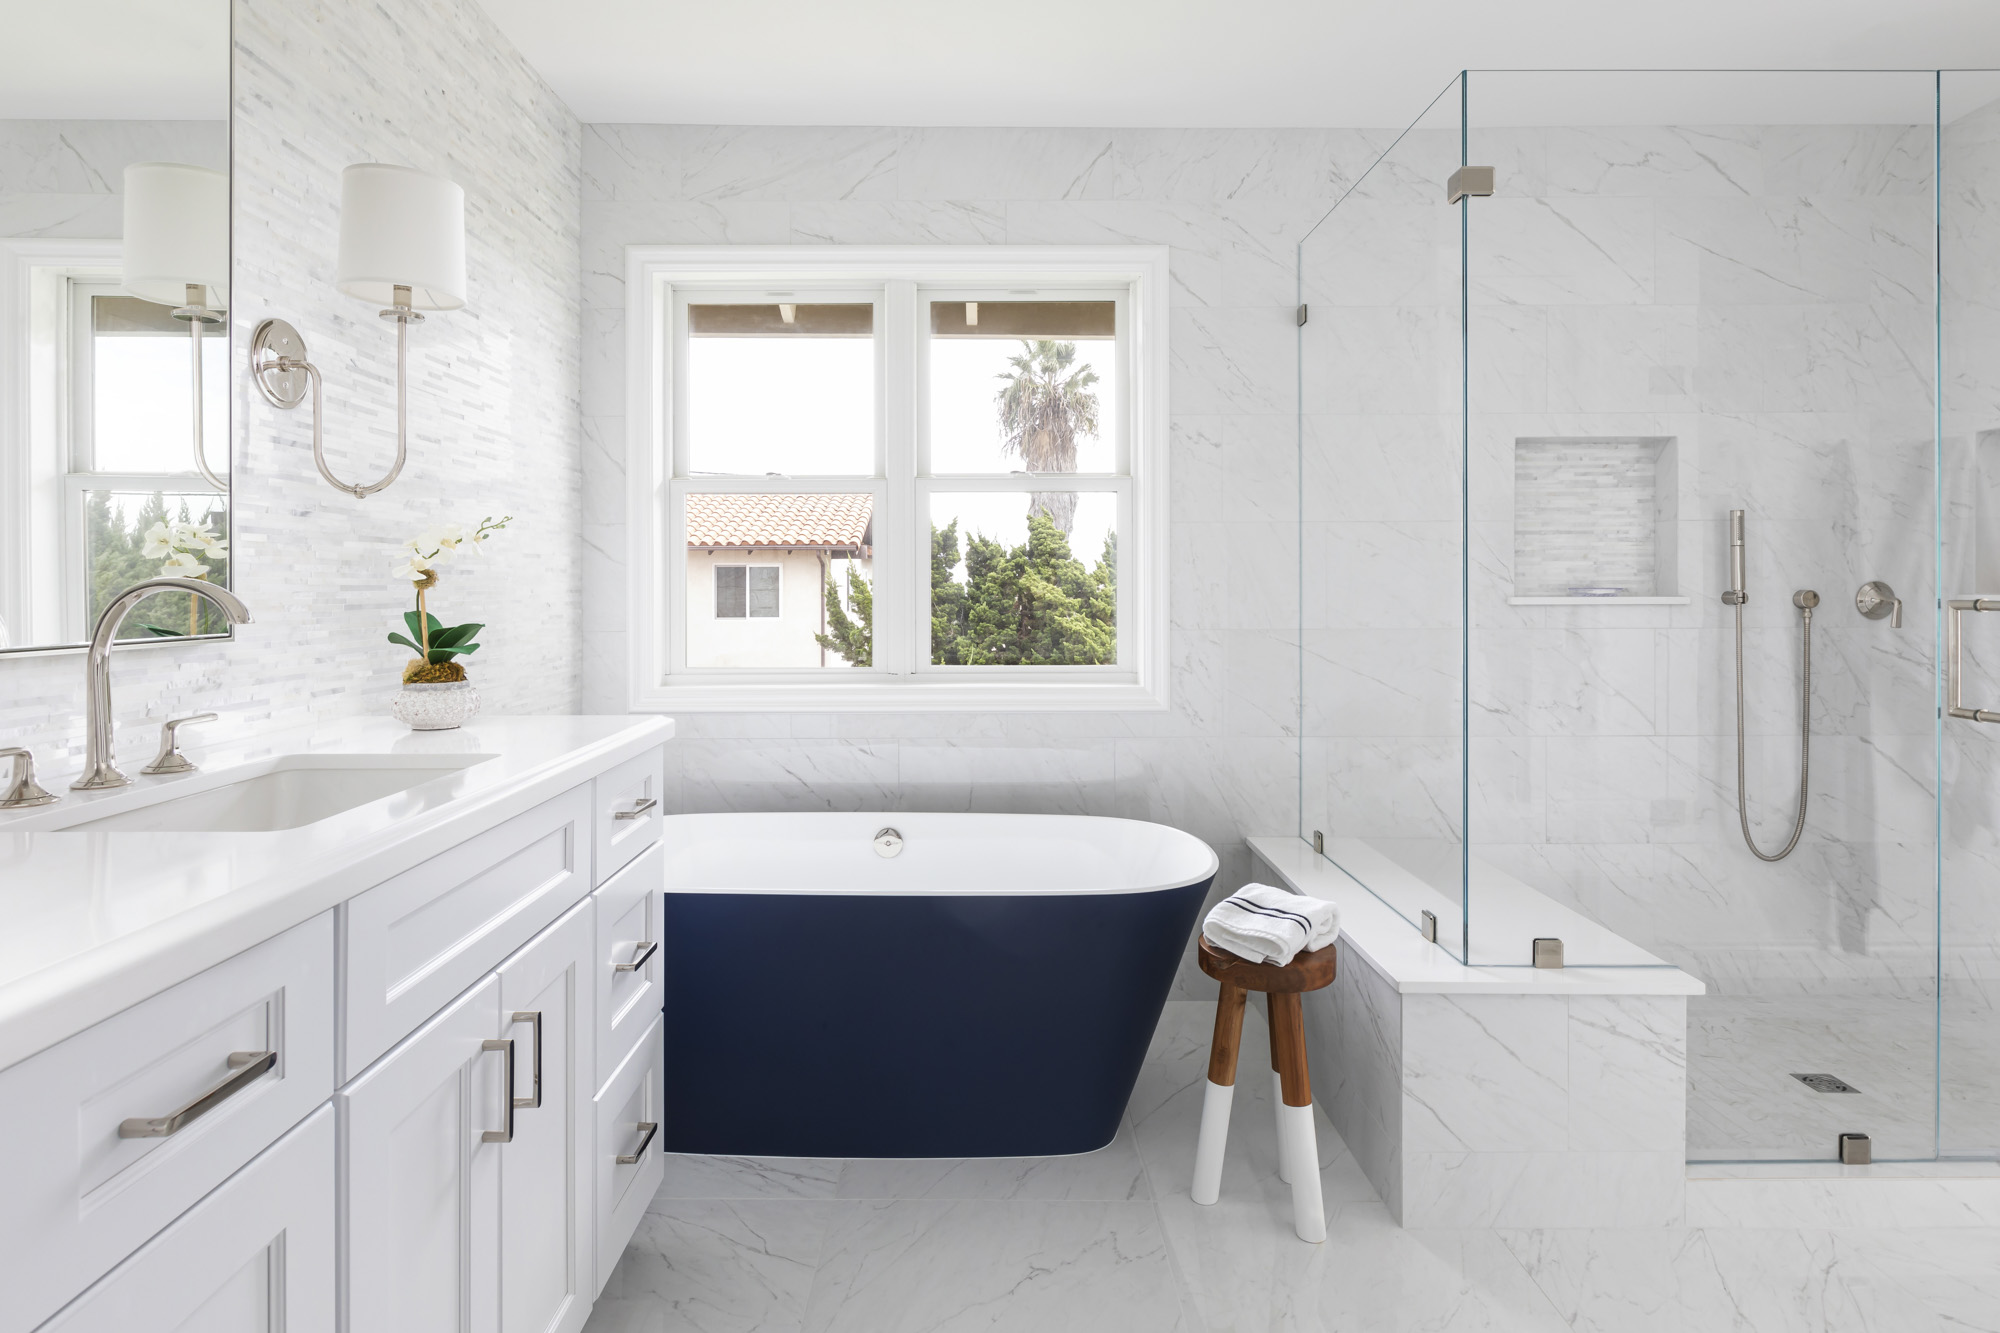 Bold-blue-victoria-albert-freestanding-tub-bathroom-remodel